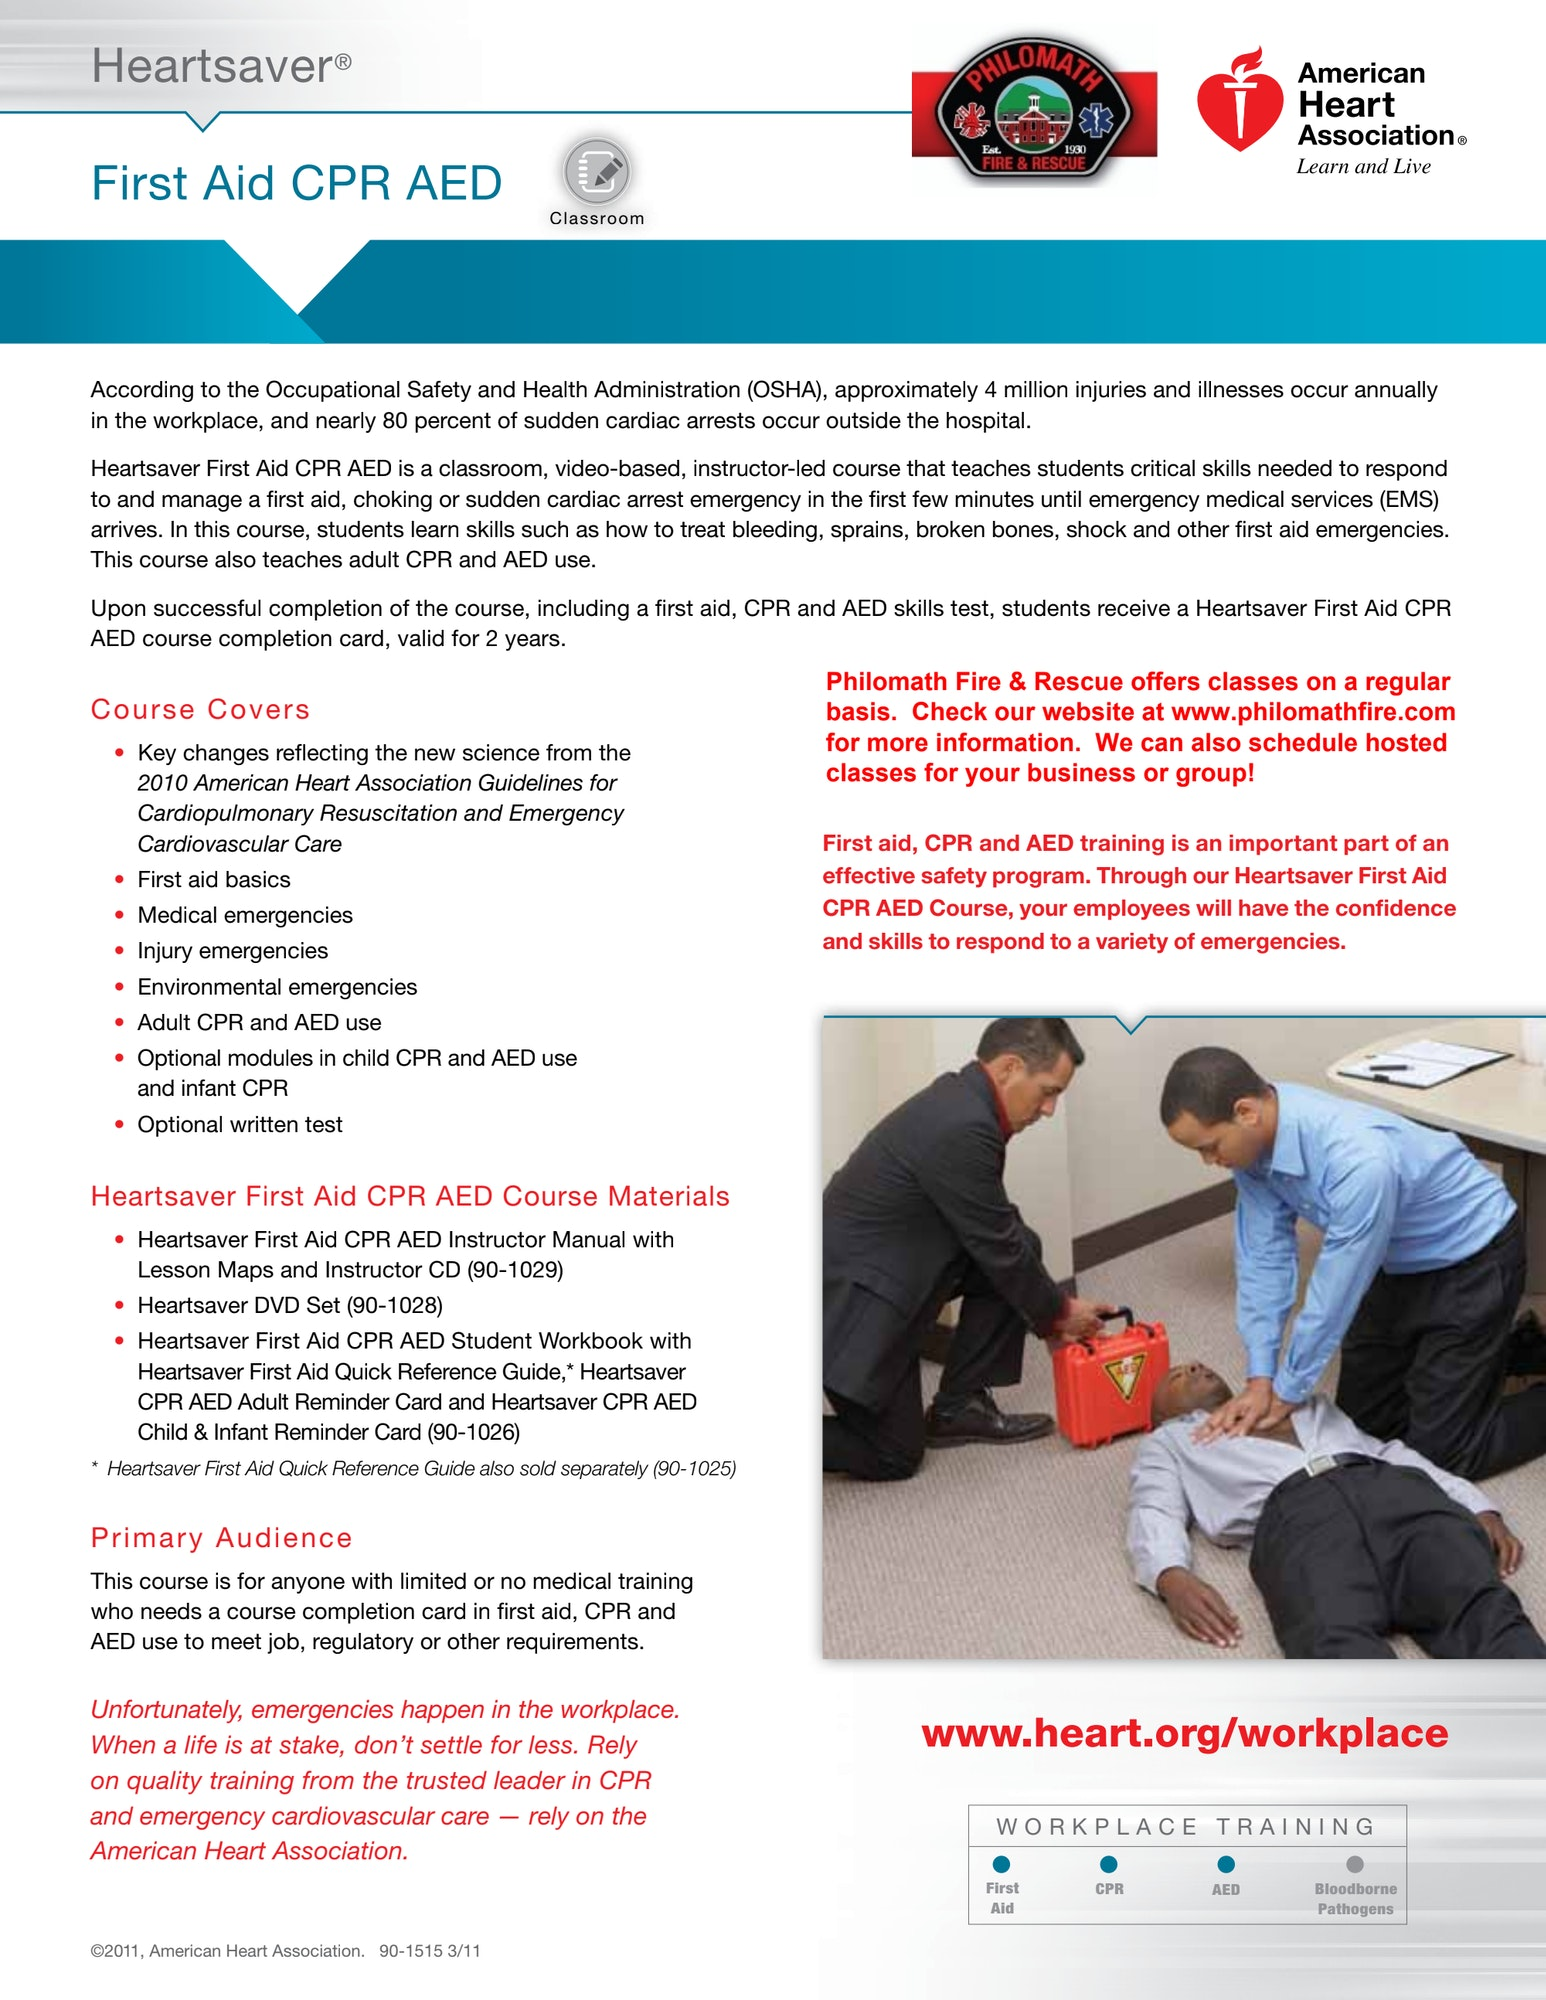 Information about First Aid CPR classes